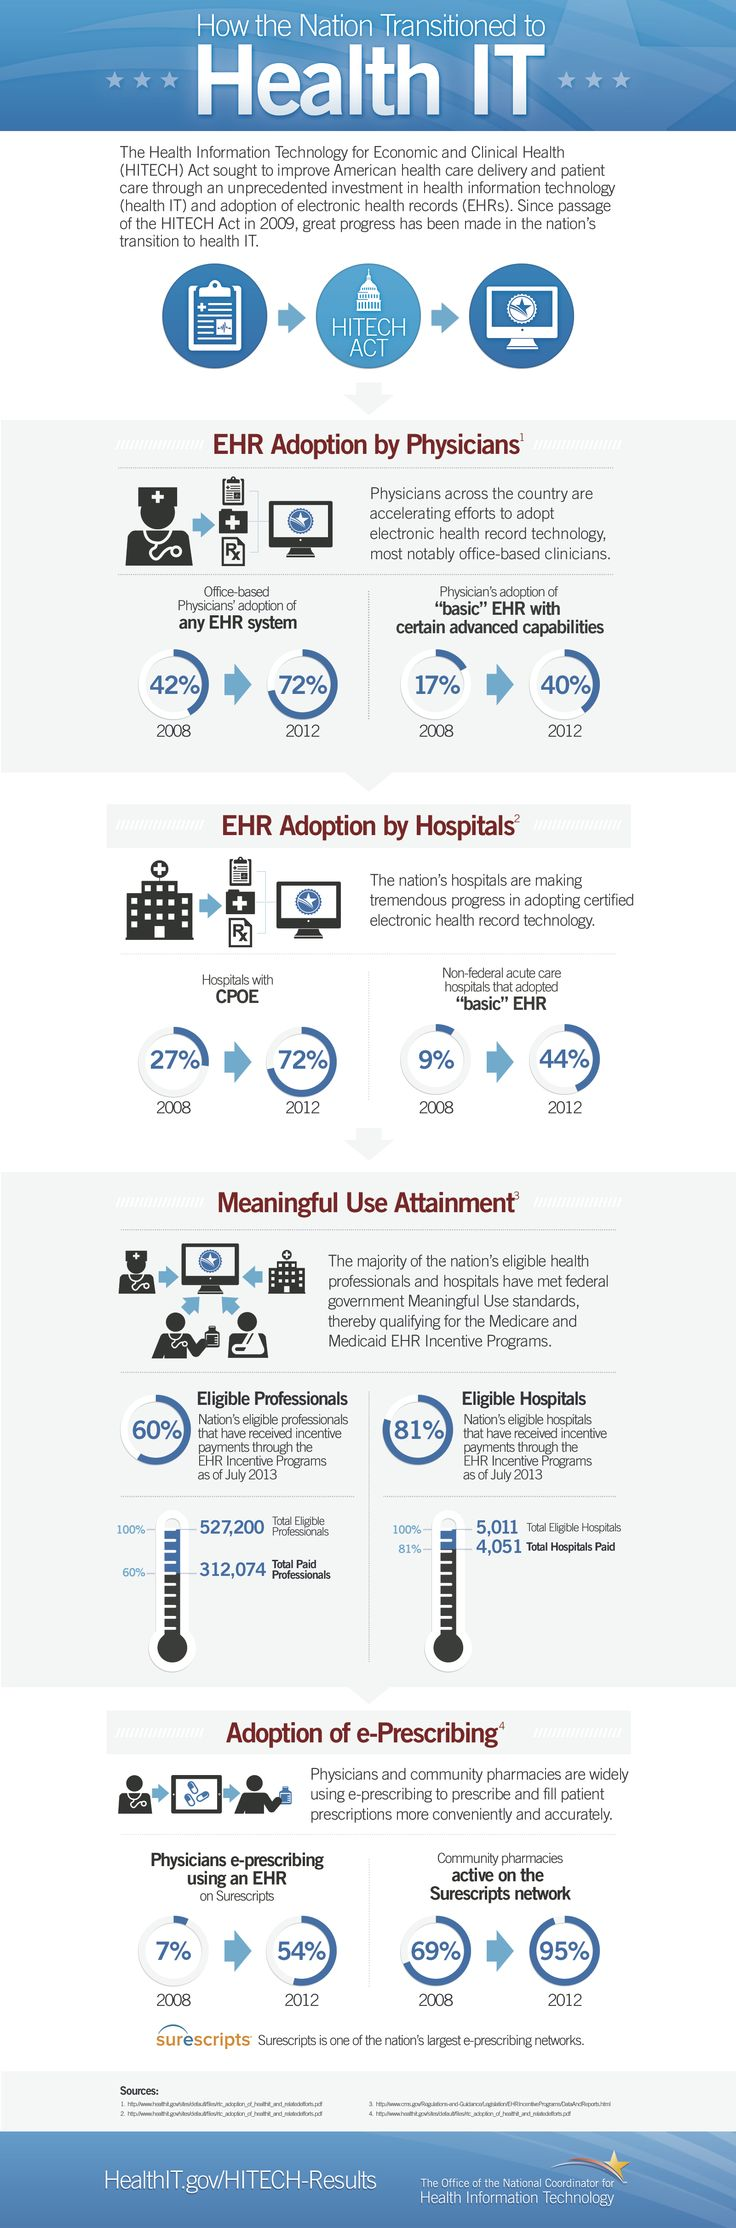 How the Nation Transitioned to Health IT infographic